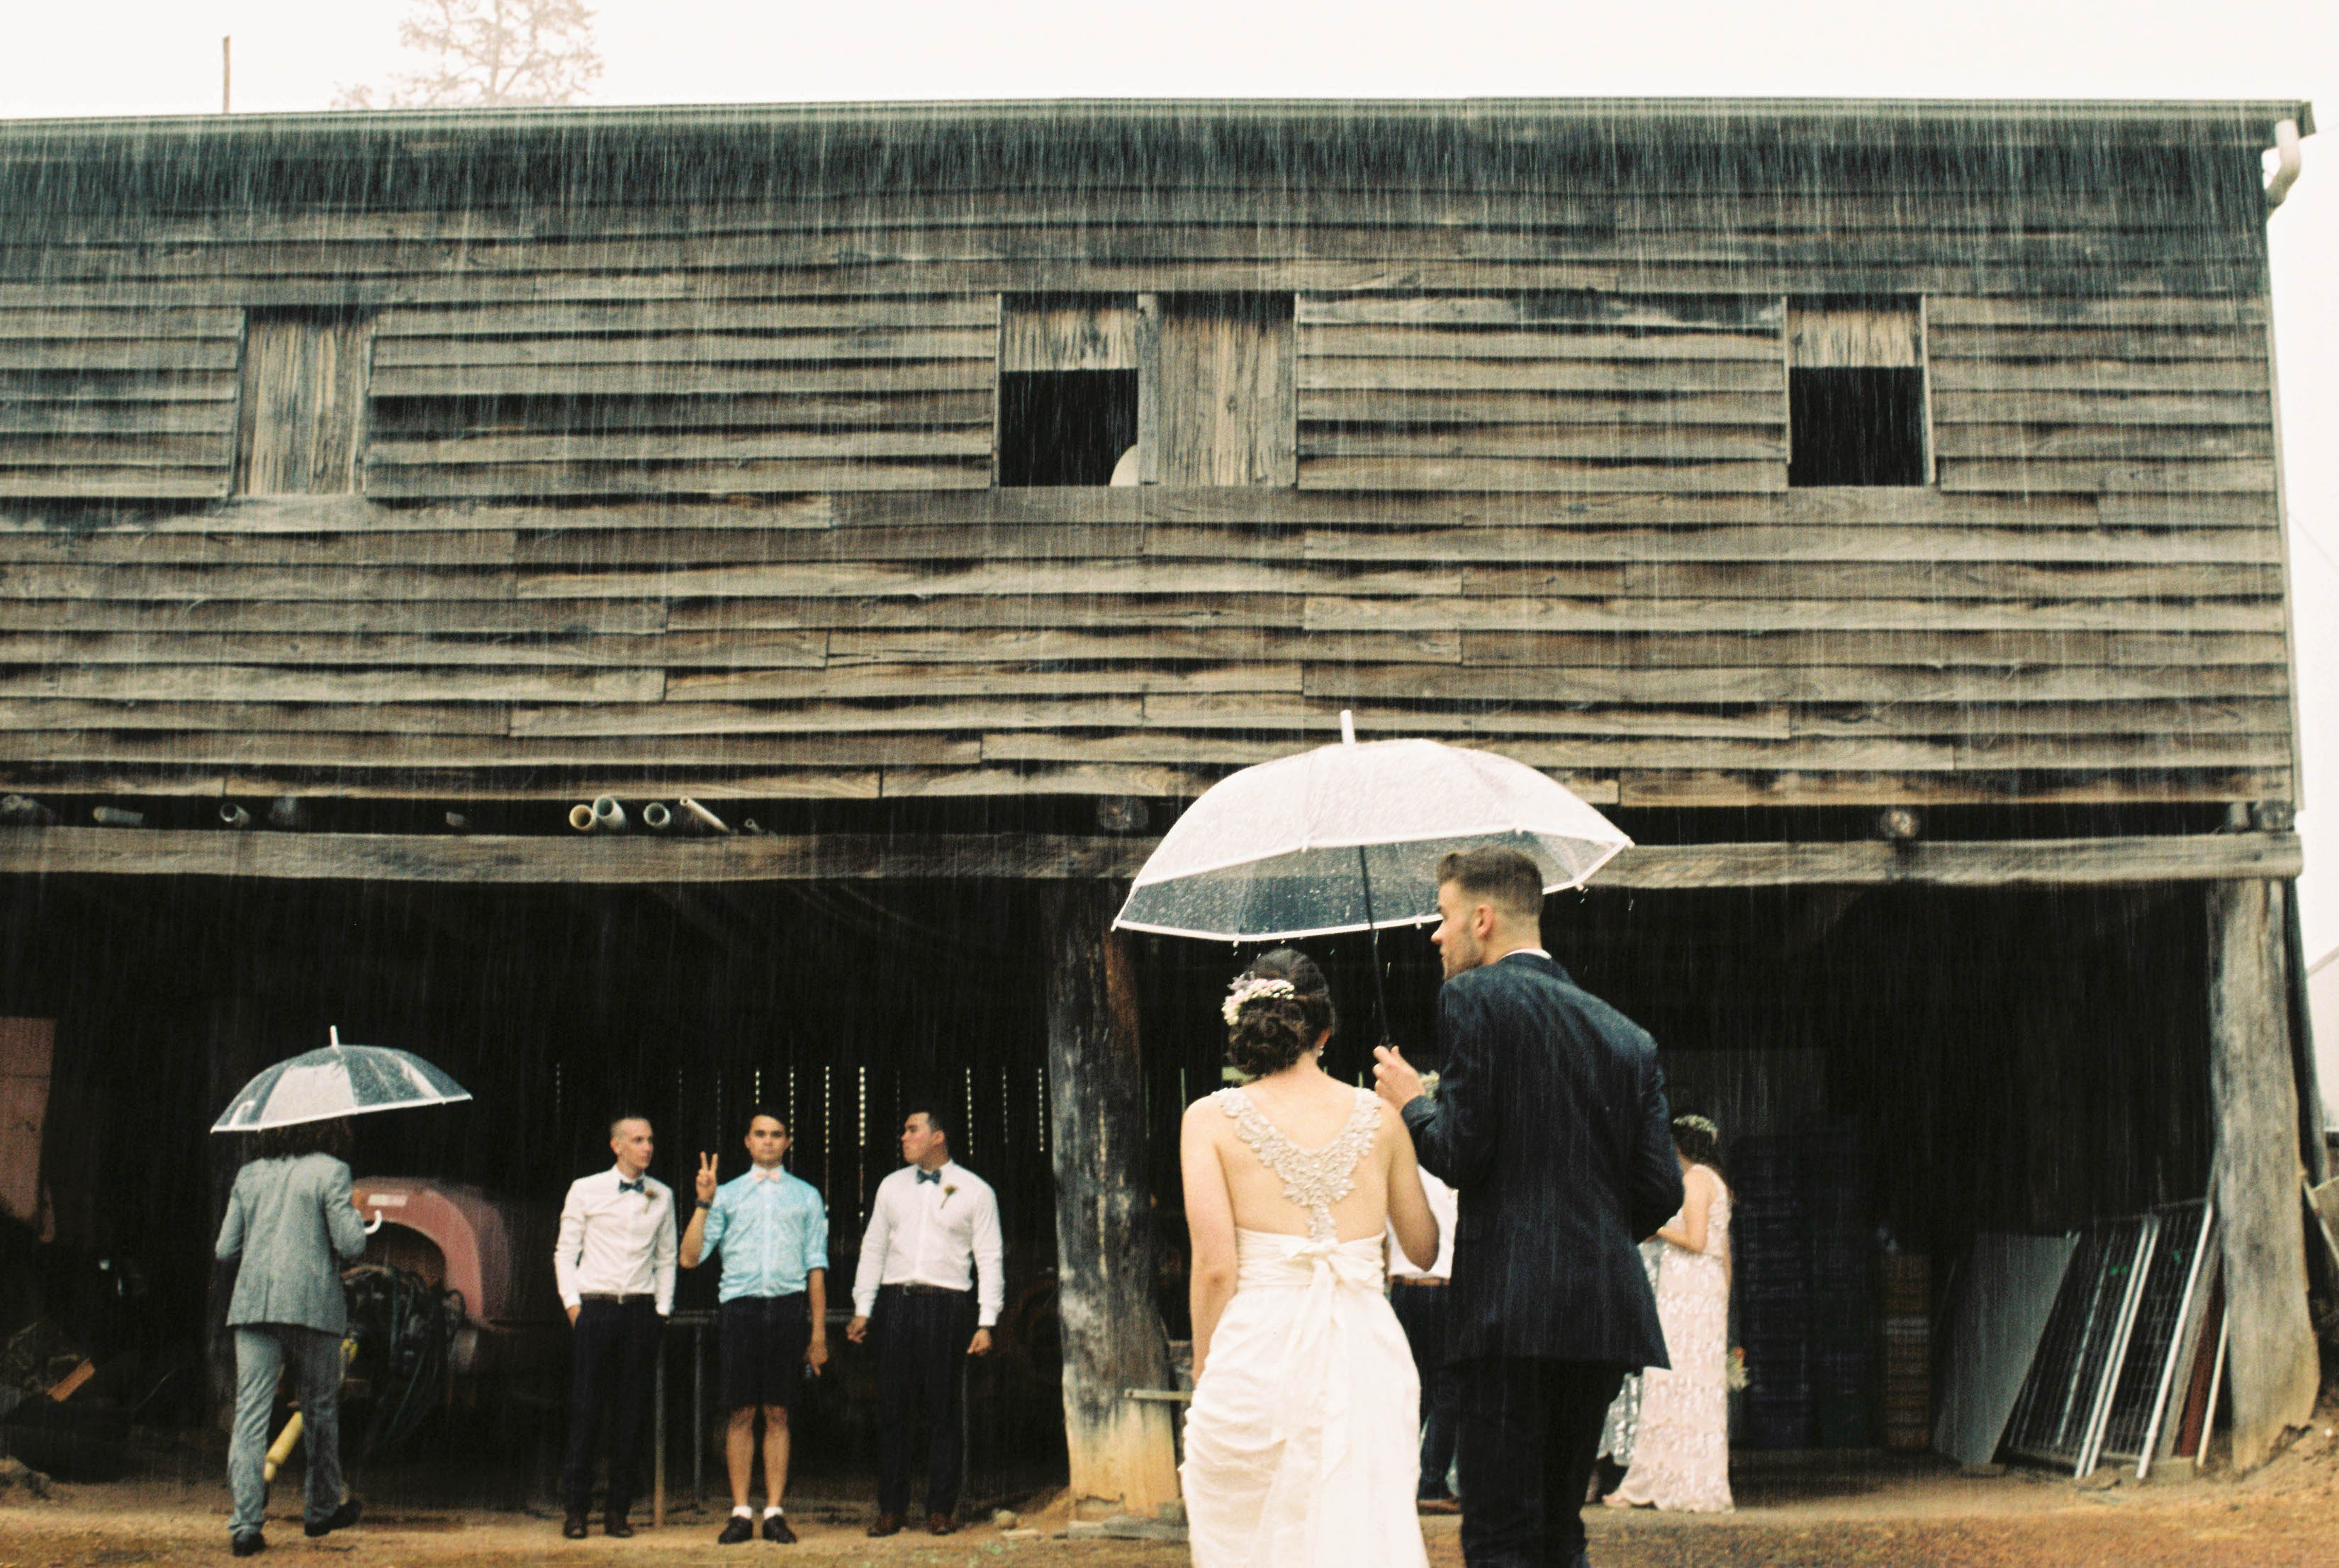 A photo of the bridal party waiting under an old farm shed while the bride & groom walk back to them